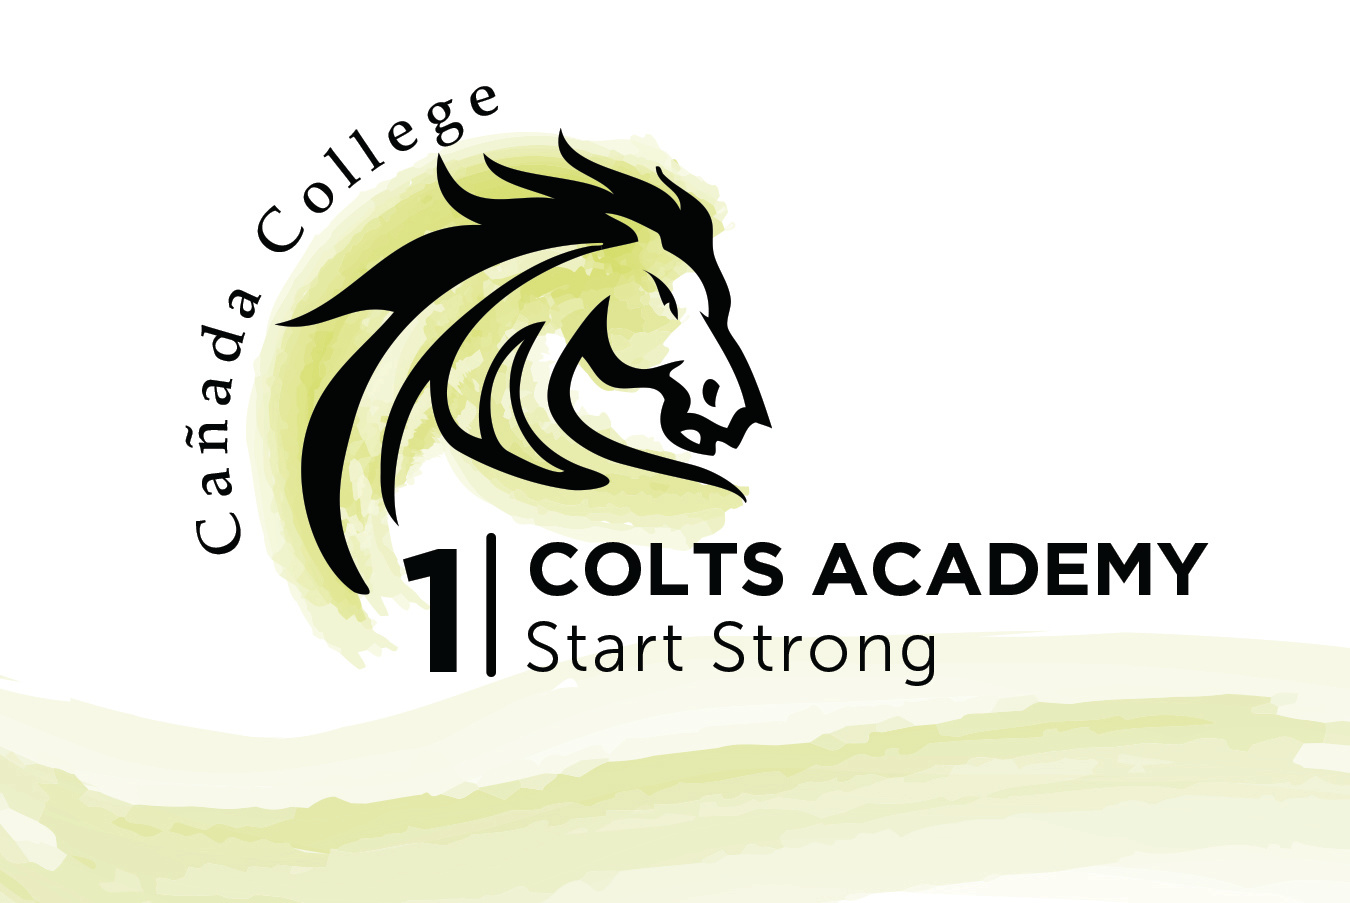 COLTS Academy Branding